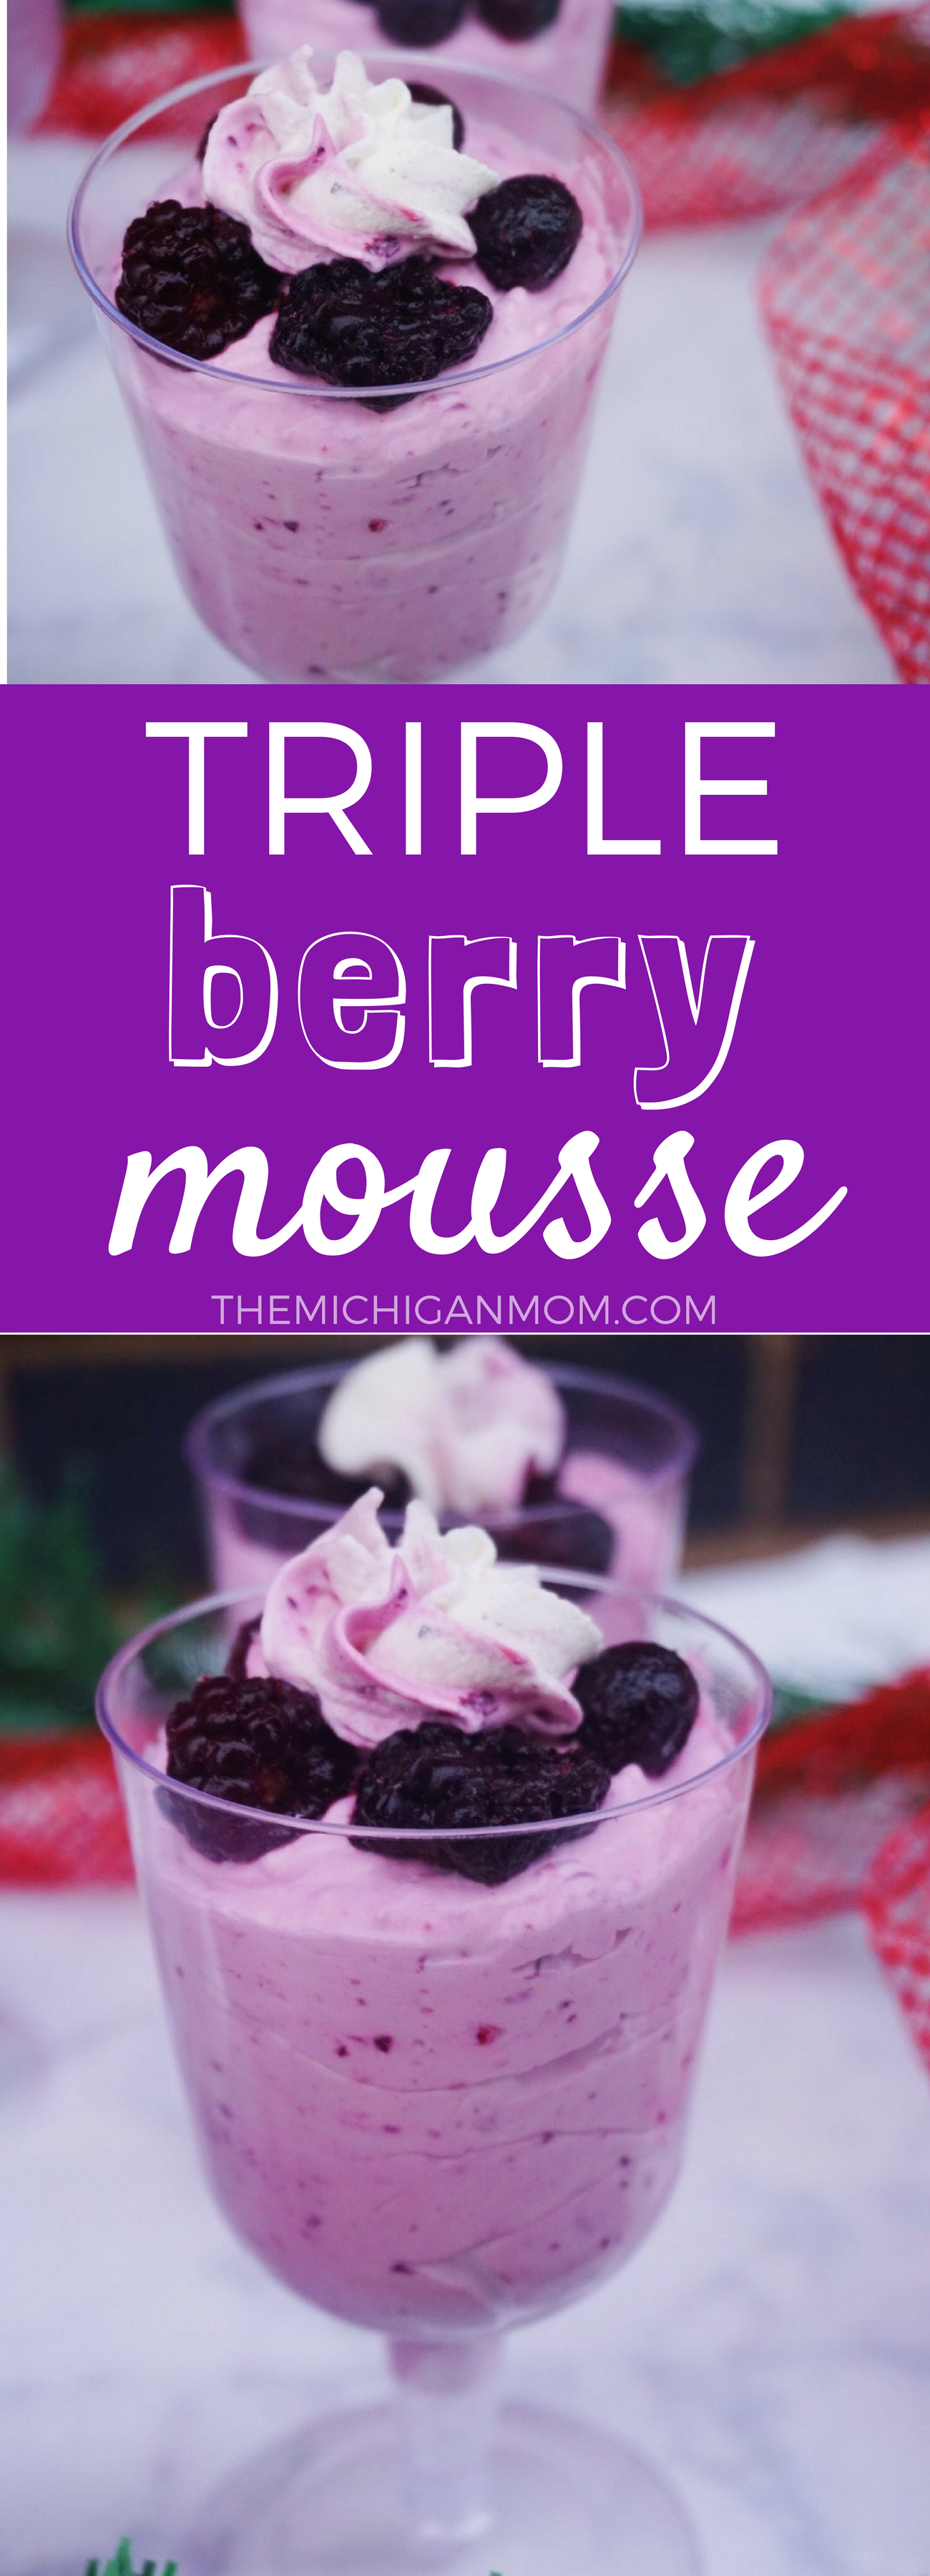 triple berry mousse recipe